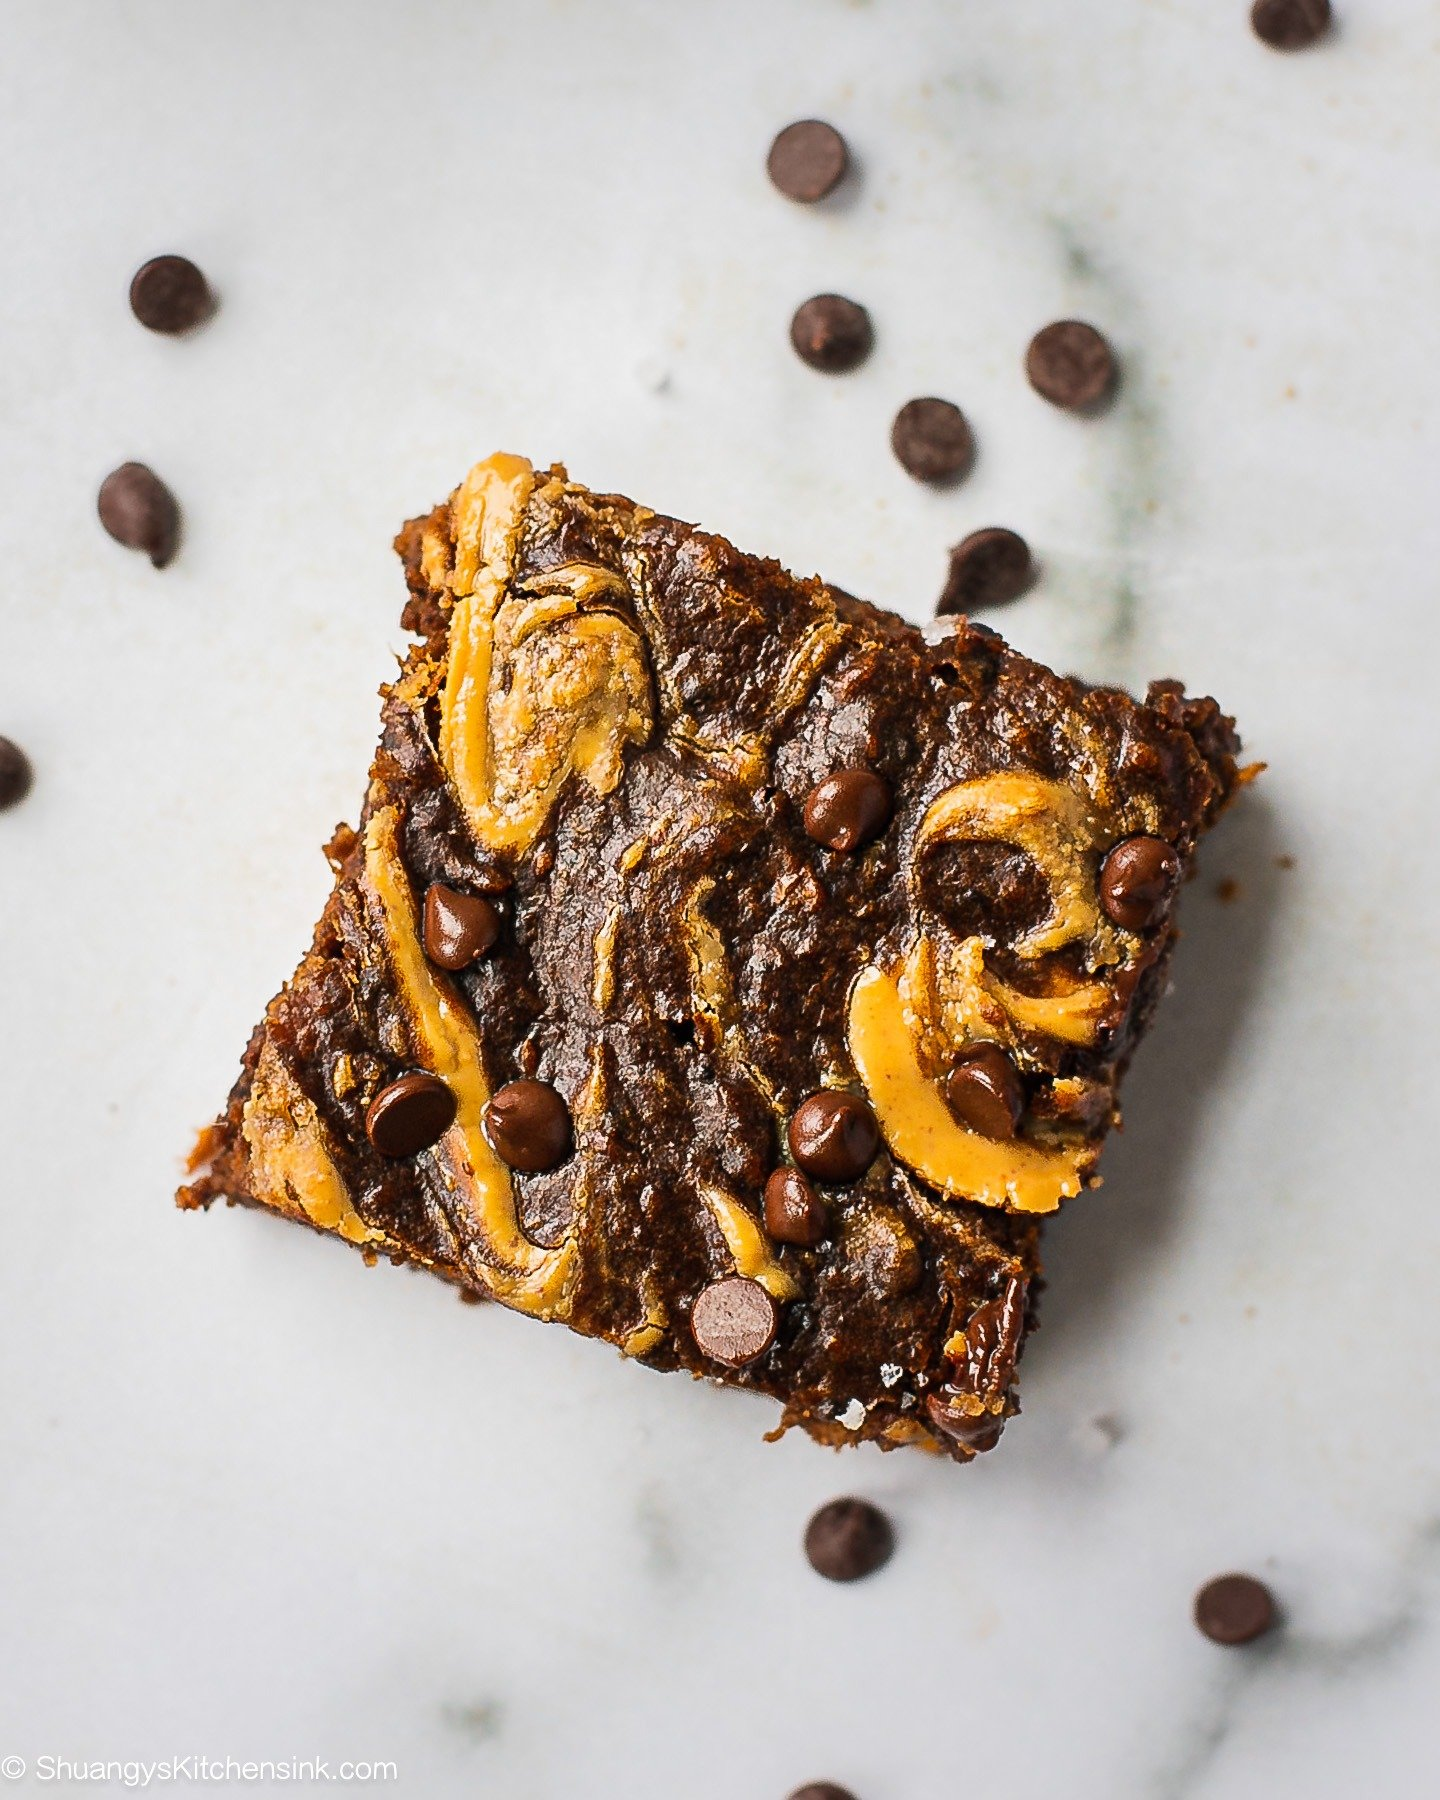 A square of sweet potato brownie. There is an orange swirl on top and some chocolate chips sprinkled on top of the healthy dessert